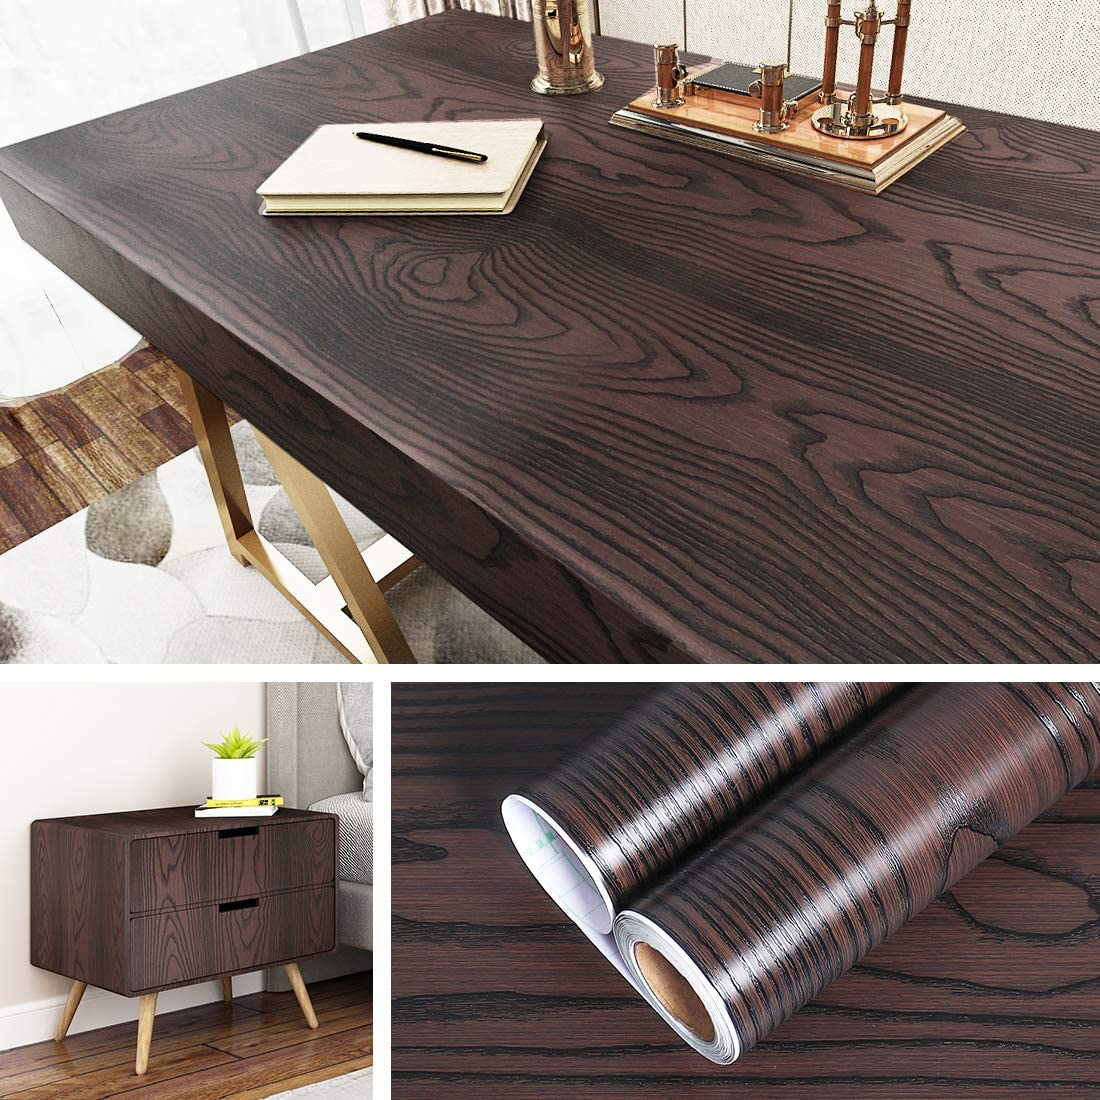 Livelynine Peel and Stick Wallpaper Wood for Cabinets Self Adhesive Shelf Liners Brown Wood Wallpaper Stick and Peel Wood Paper Kitchen Desk Old Furnitures Decor Removable Waterproof 15.8x78.8 Inches